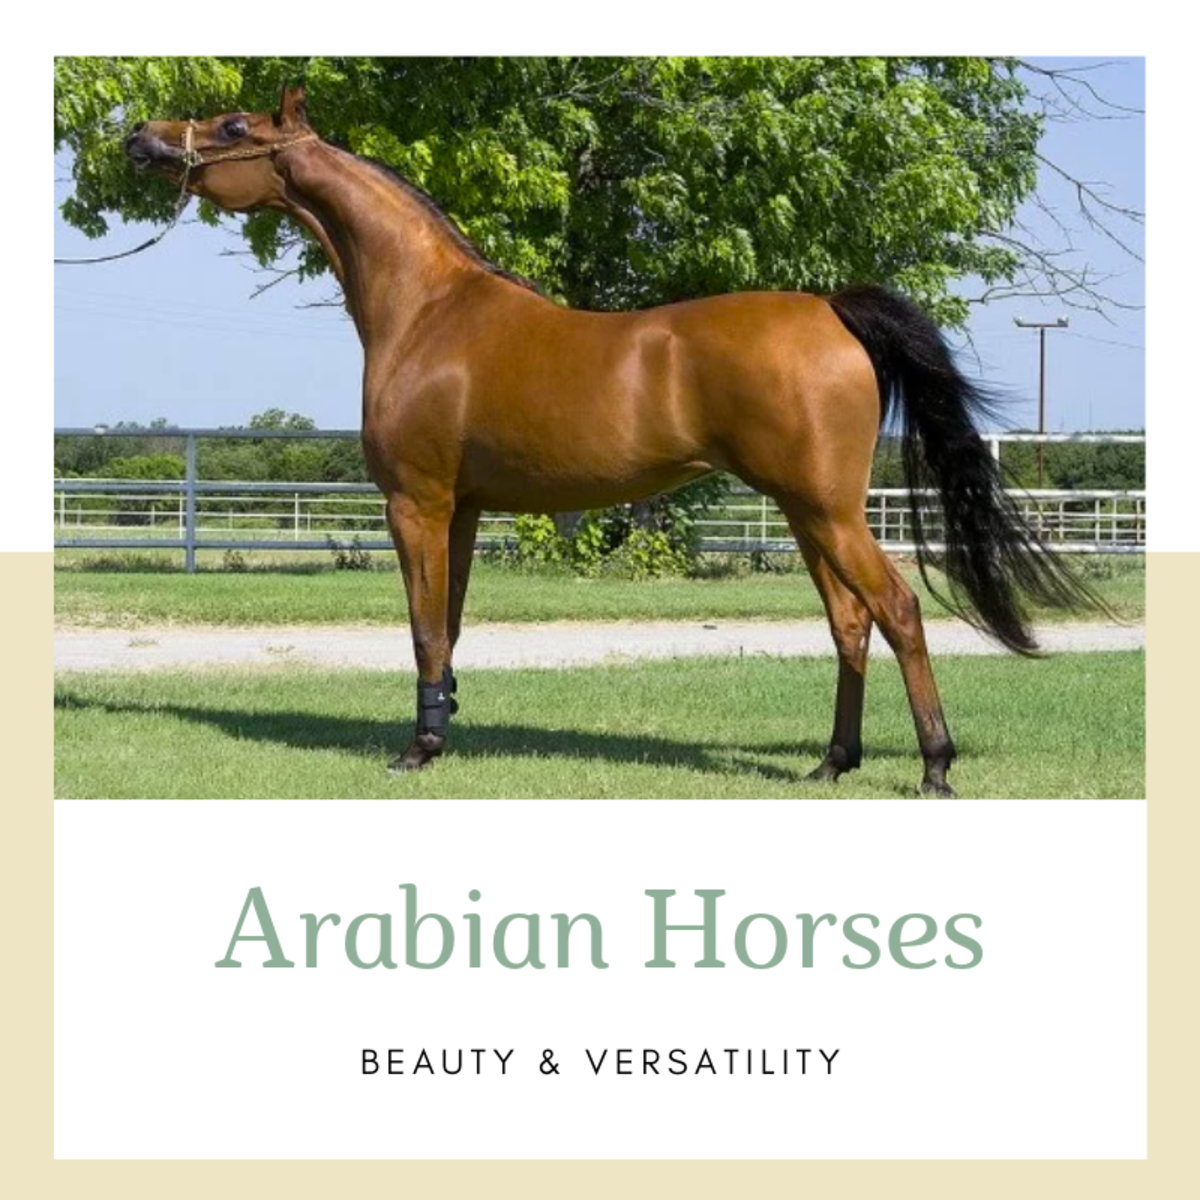 Arabian Horse Qualities, History, and Competitions